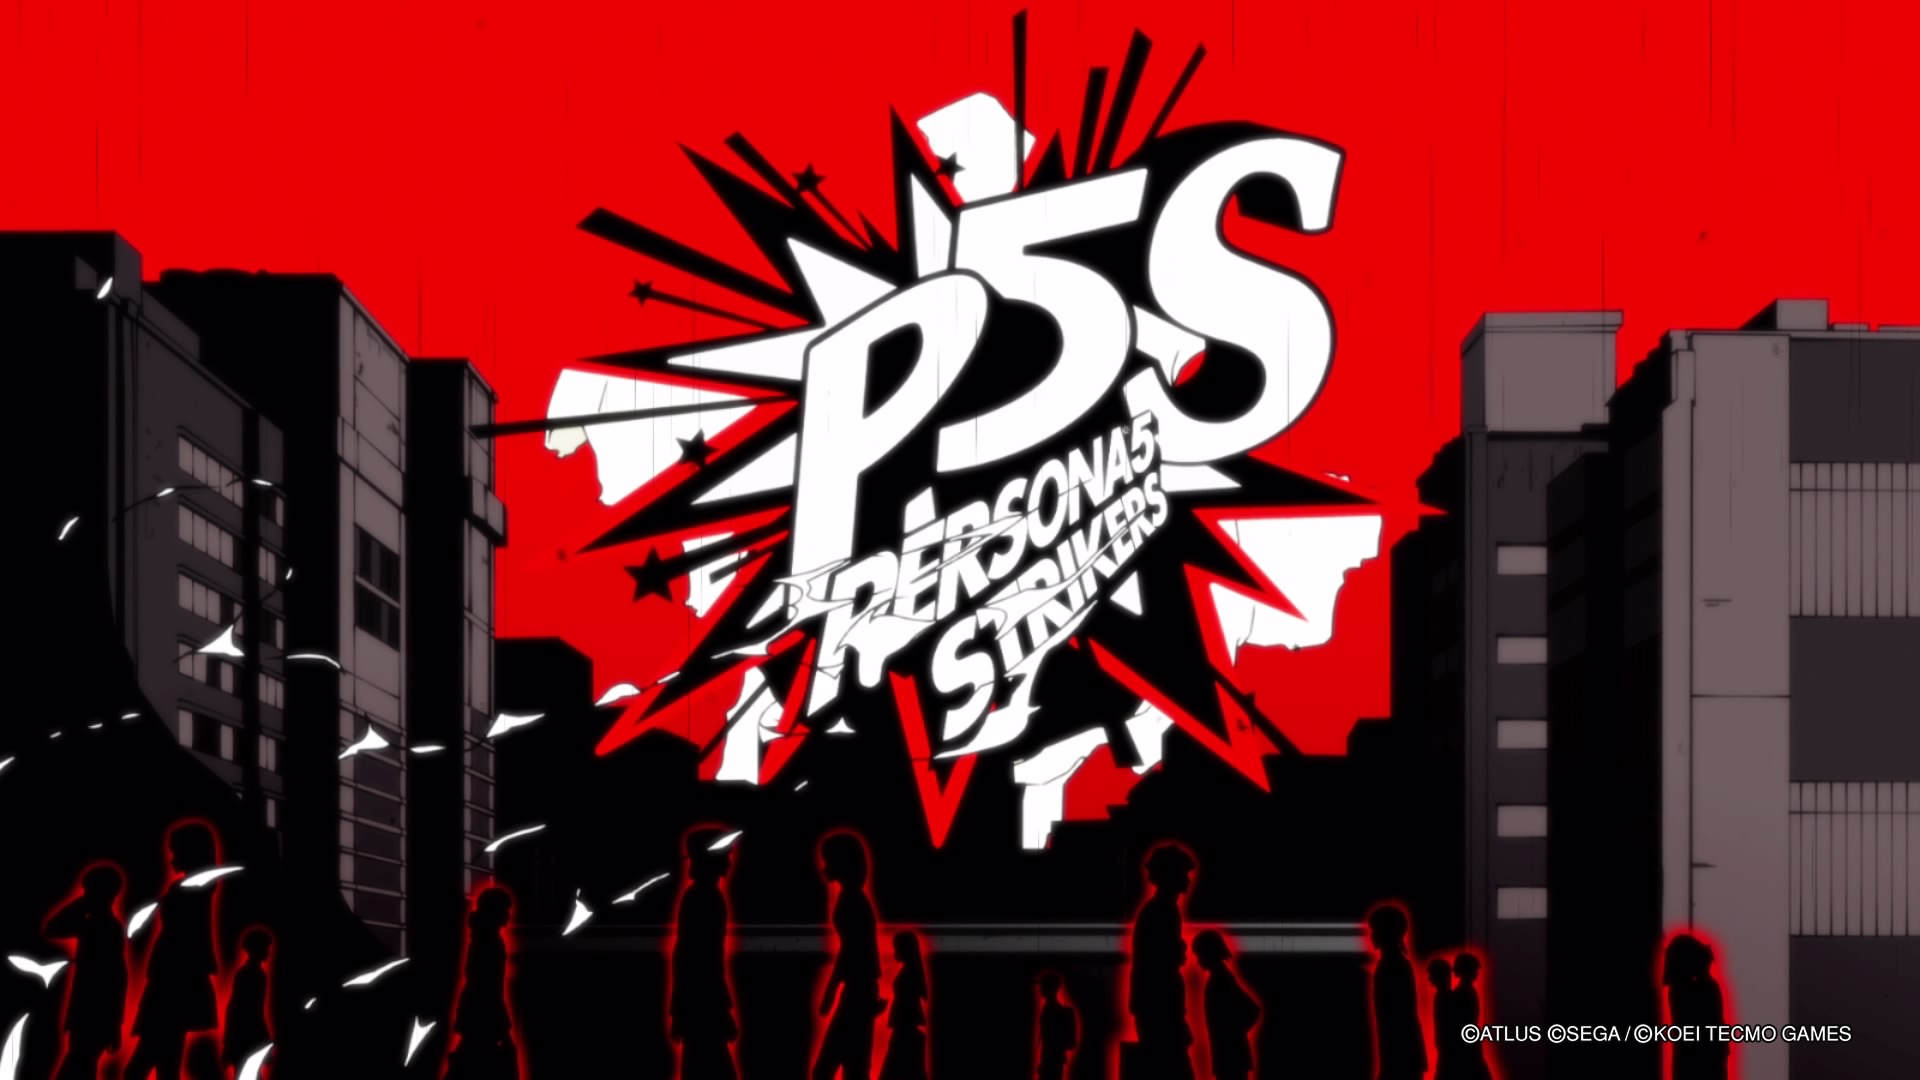 Persona 5 Strikers Review - You'll Never See It Coming